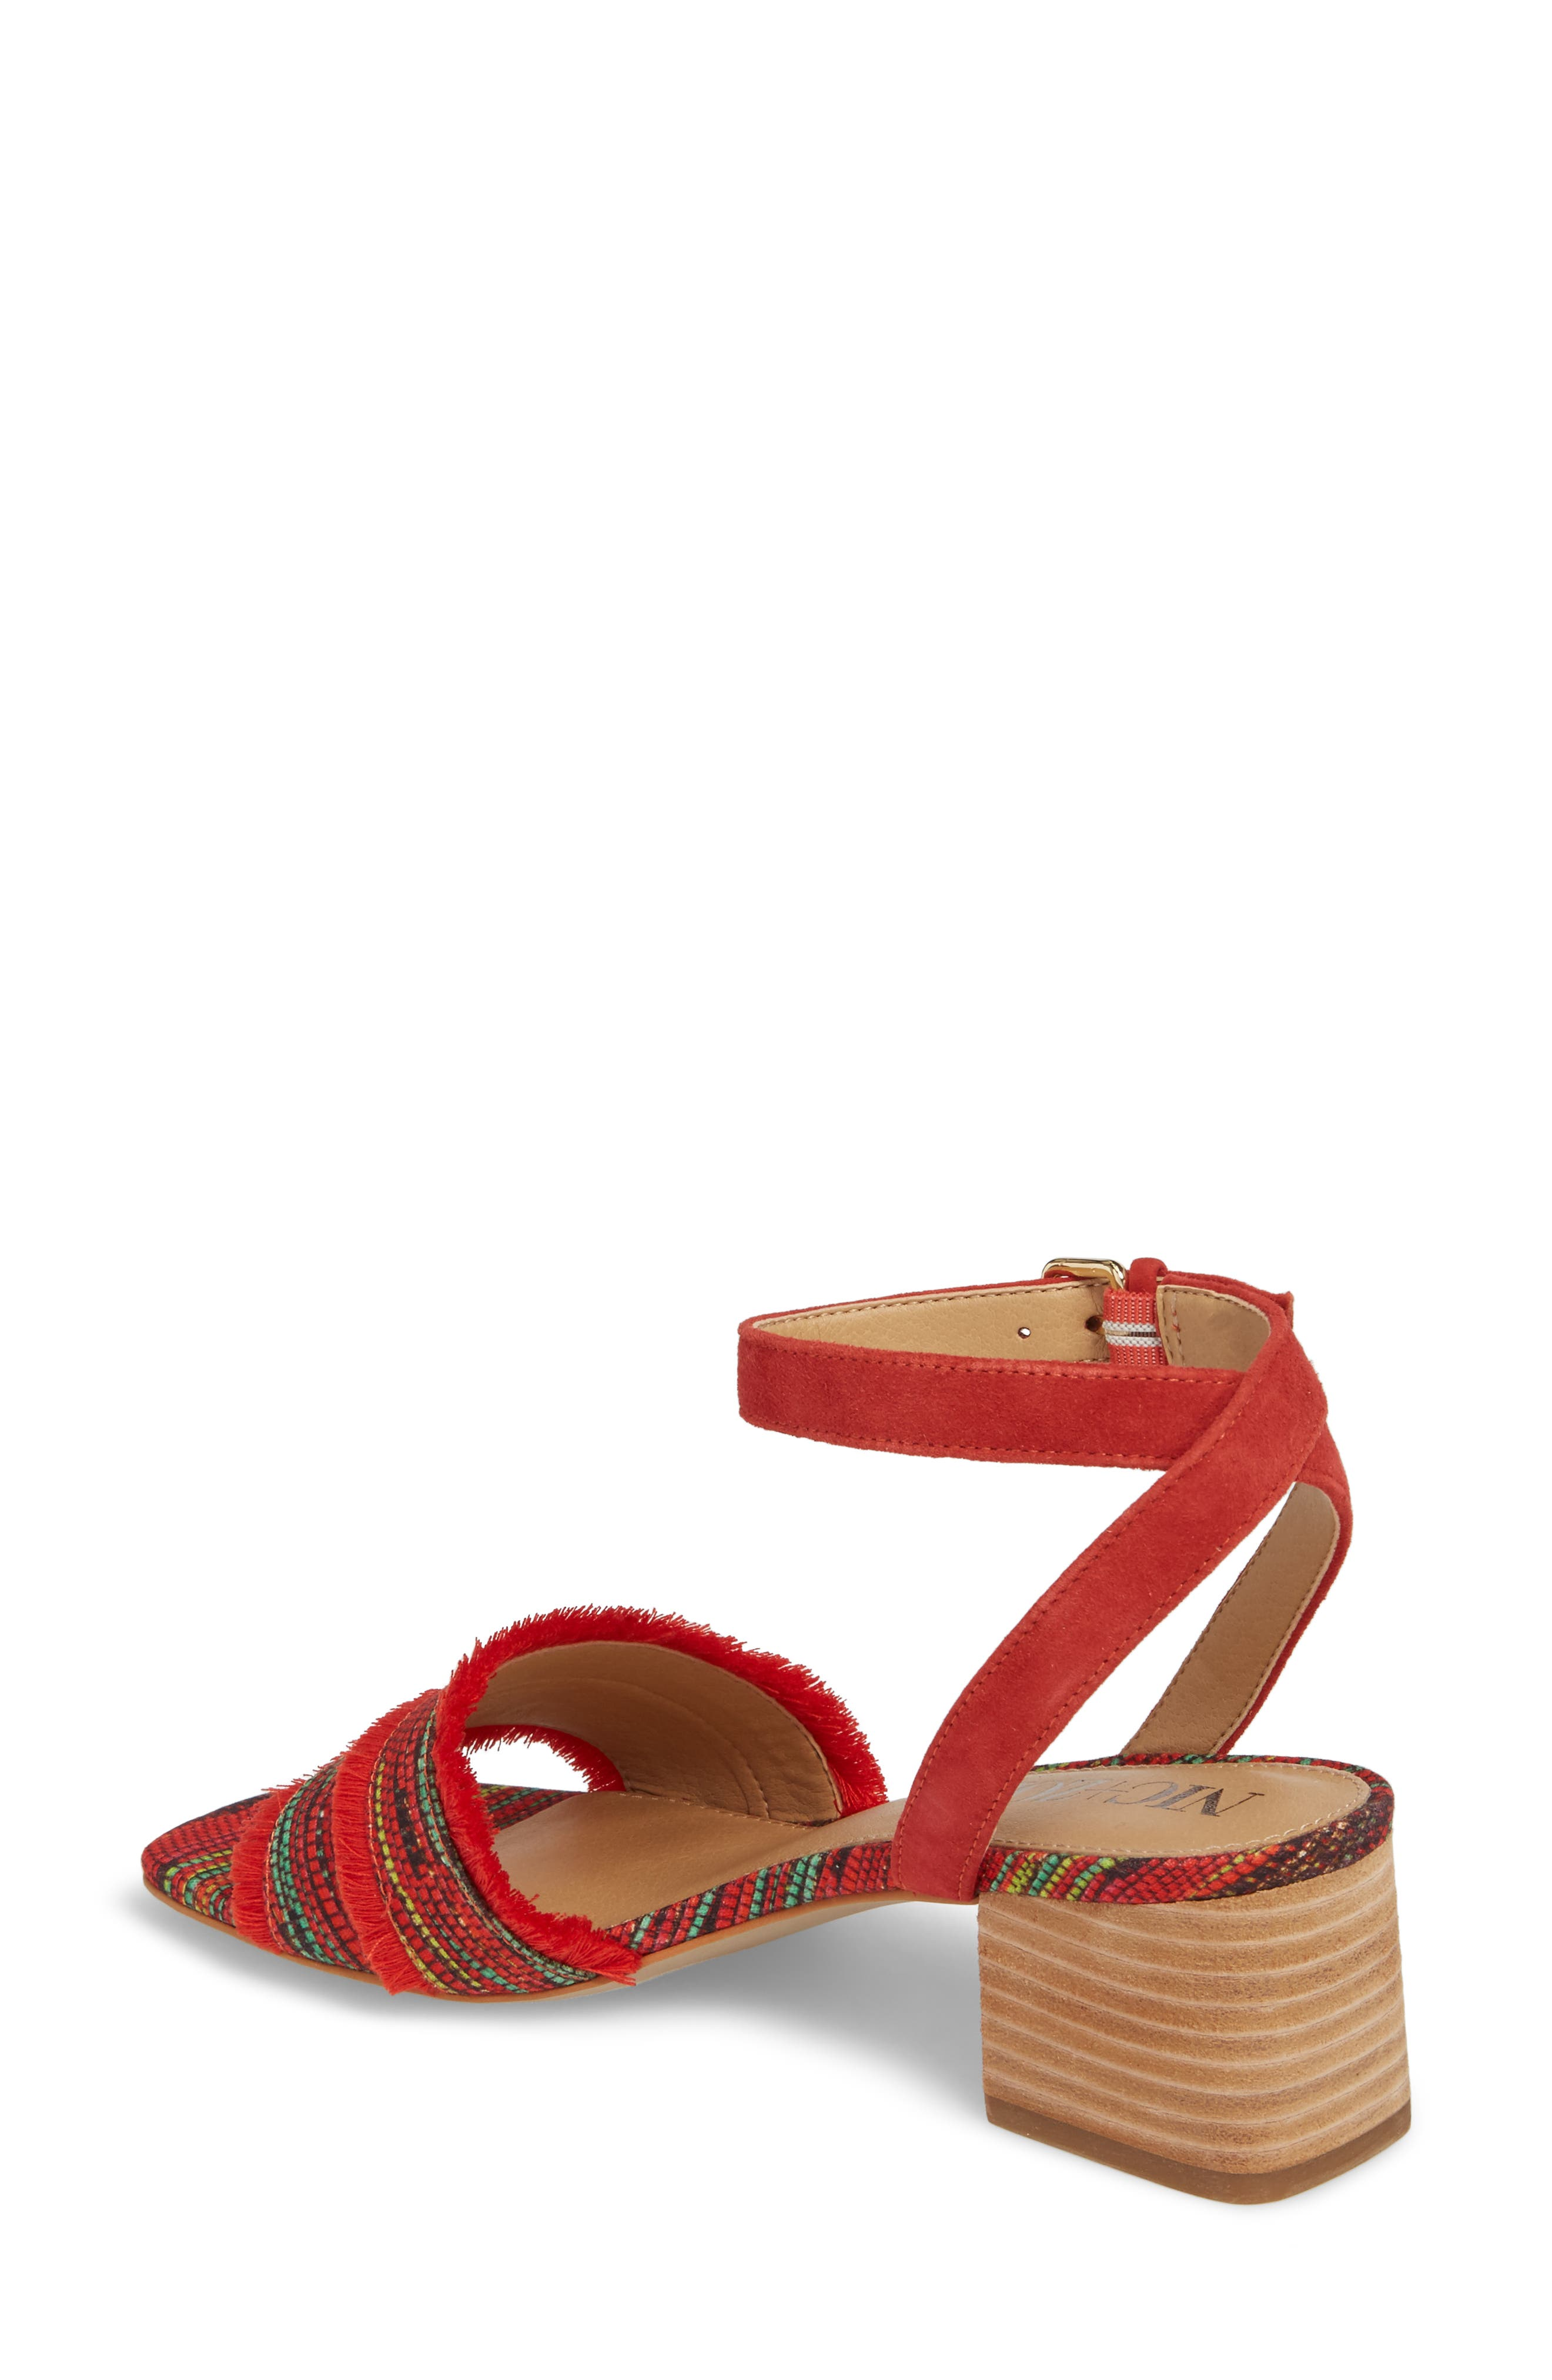 Zaria Fringed Sandal,                             Alternate thumbnail 2, color,                             Red Multi Fabric